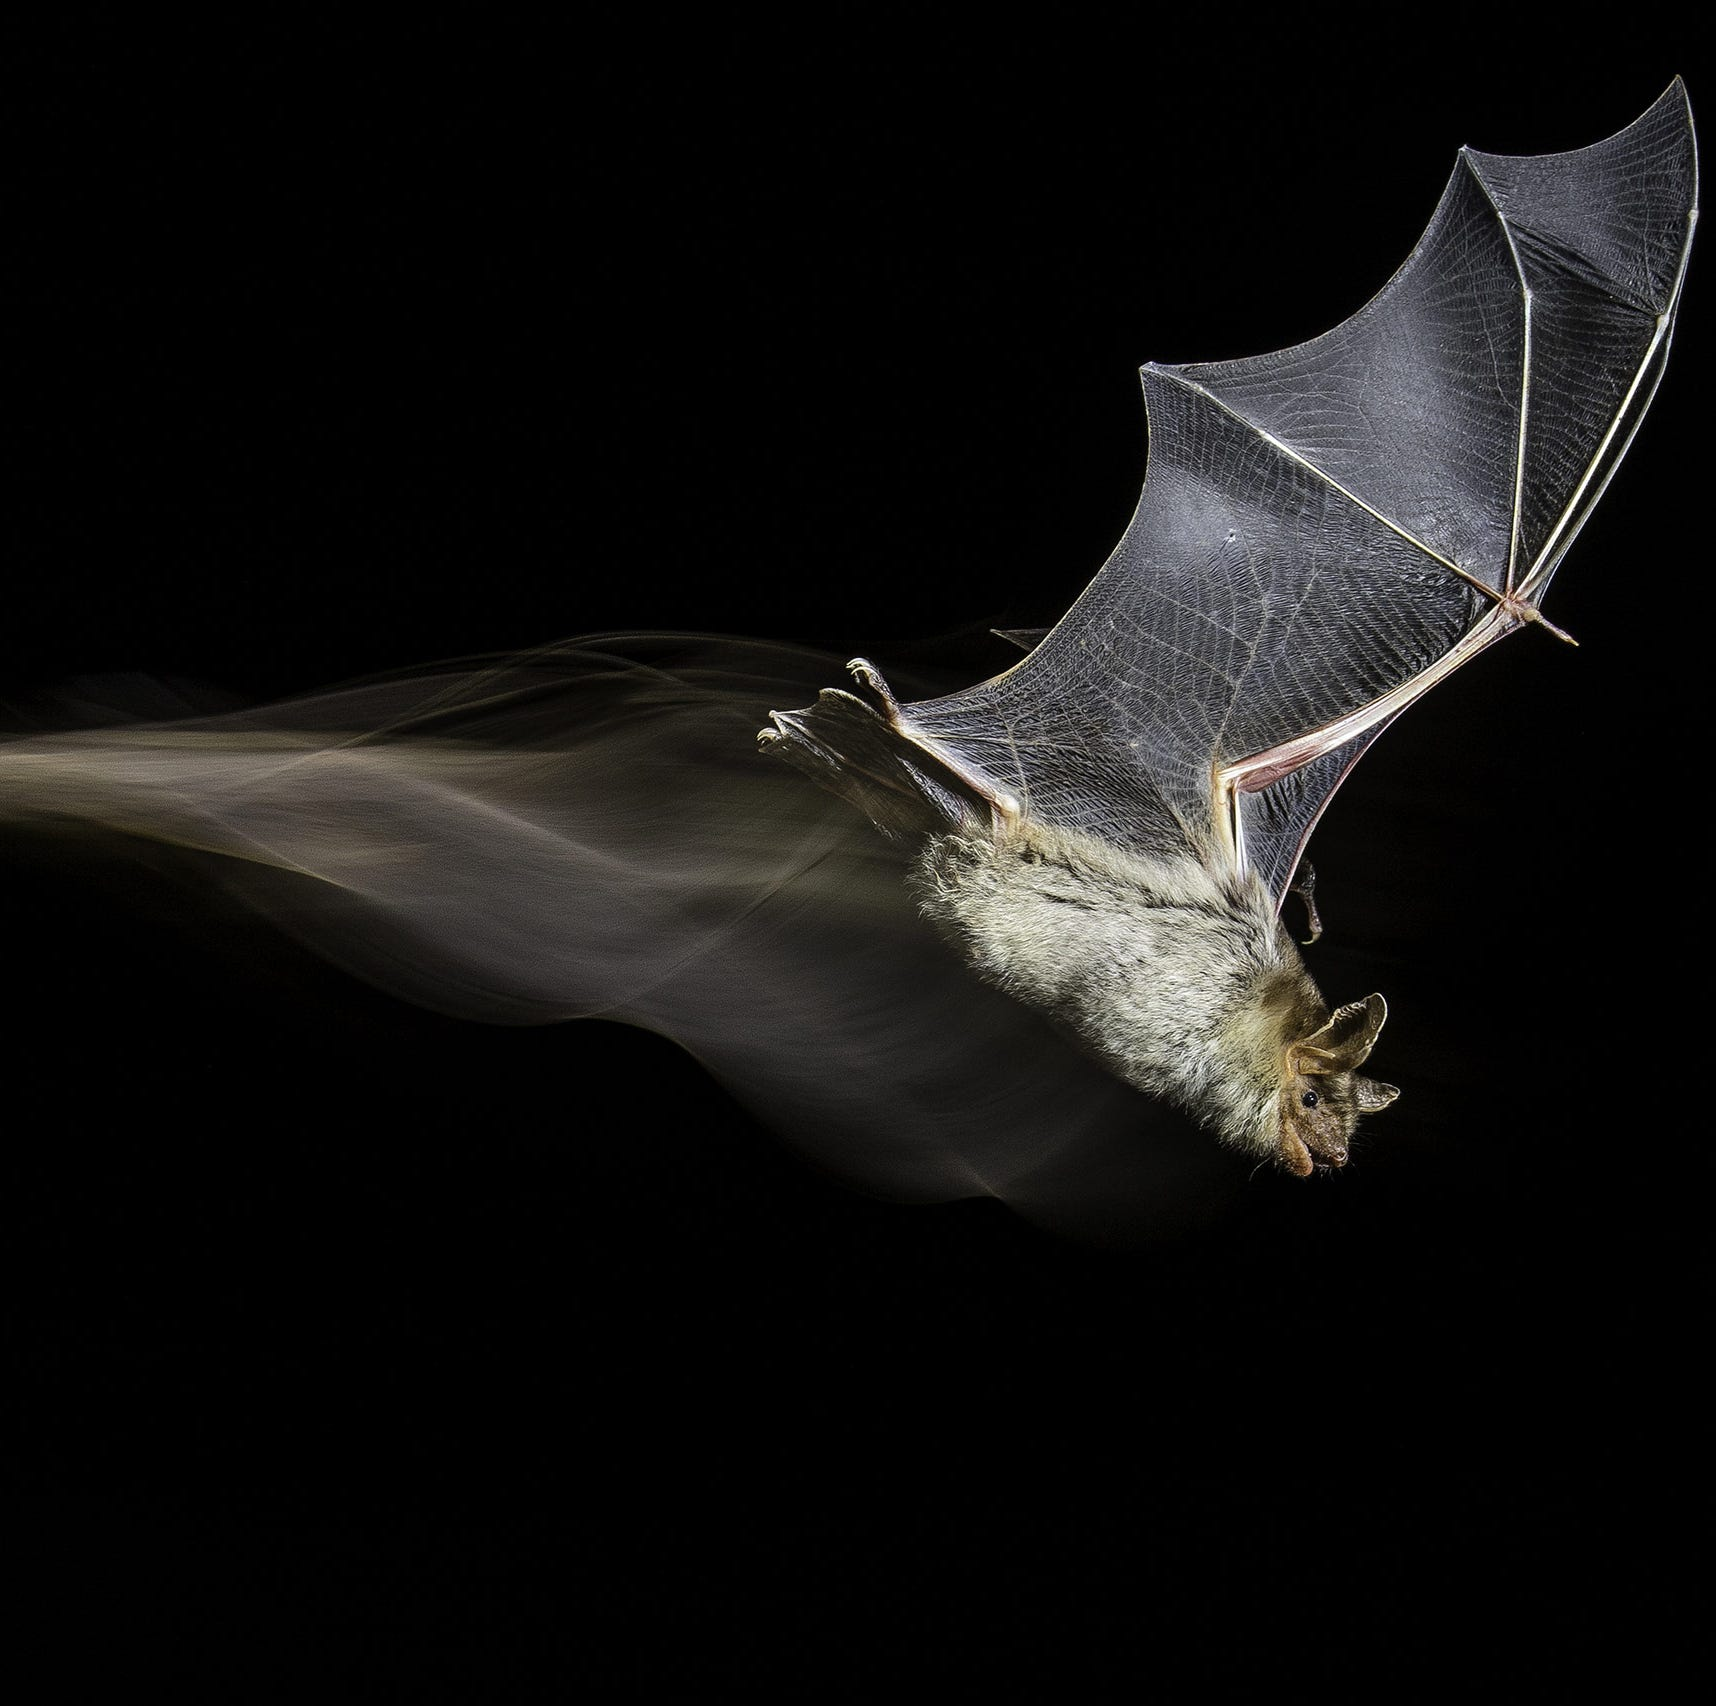 """The Bat's Wake by Antonio Leiva Sanchez, Spain -- After several months of field research into a little colony of greater mouse-eared bats in Sucs, Lleida, Spain, Antonio managed to capture this bat mid-flight. He used a technique of high speed photography with flashes combined with continuous light to create the """"wake."""" -- Canon7D Mark II + Tamron 18-270mm f3.5-6.3 lens; 1/13 sec at f10; ISO 200; Infrared barrier; Metz 58 AF-1 flash; E-TTL flash cable."""